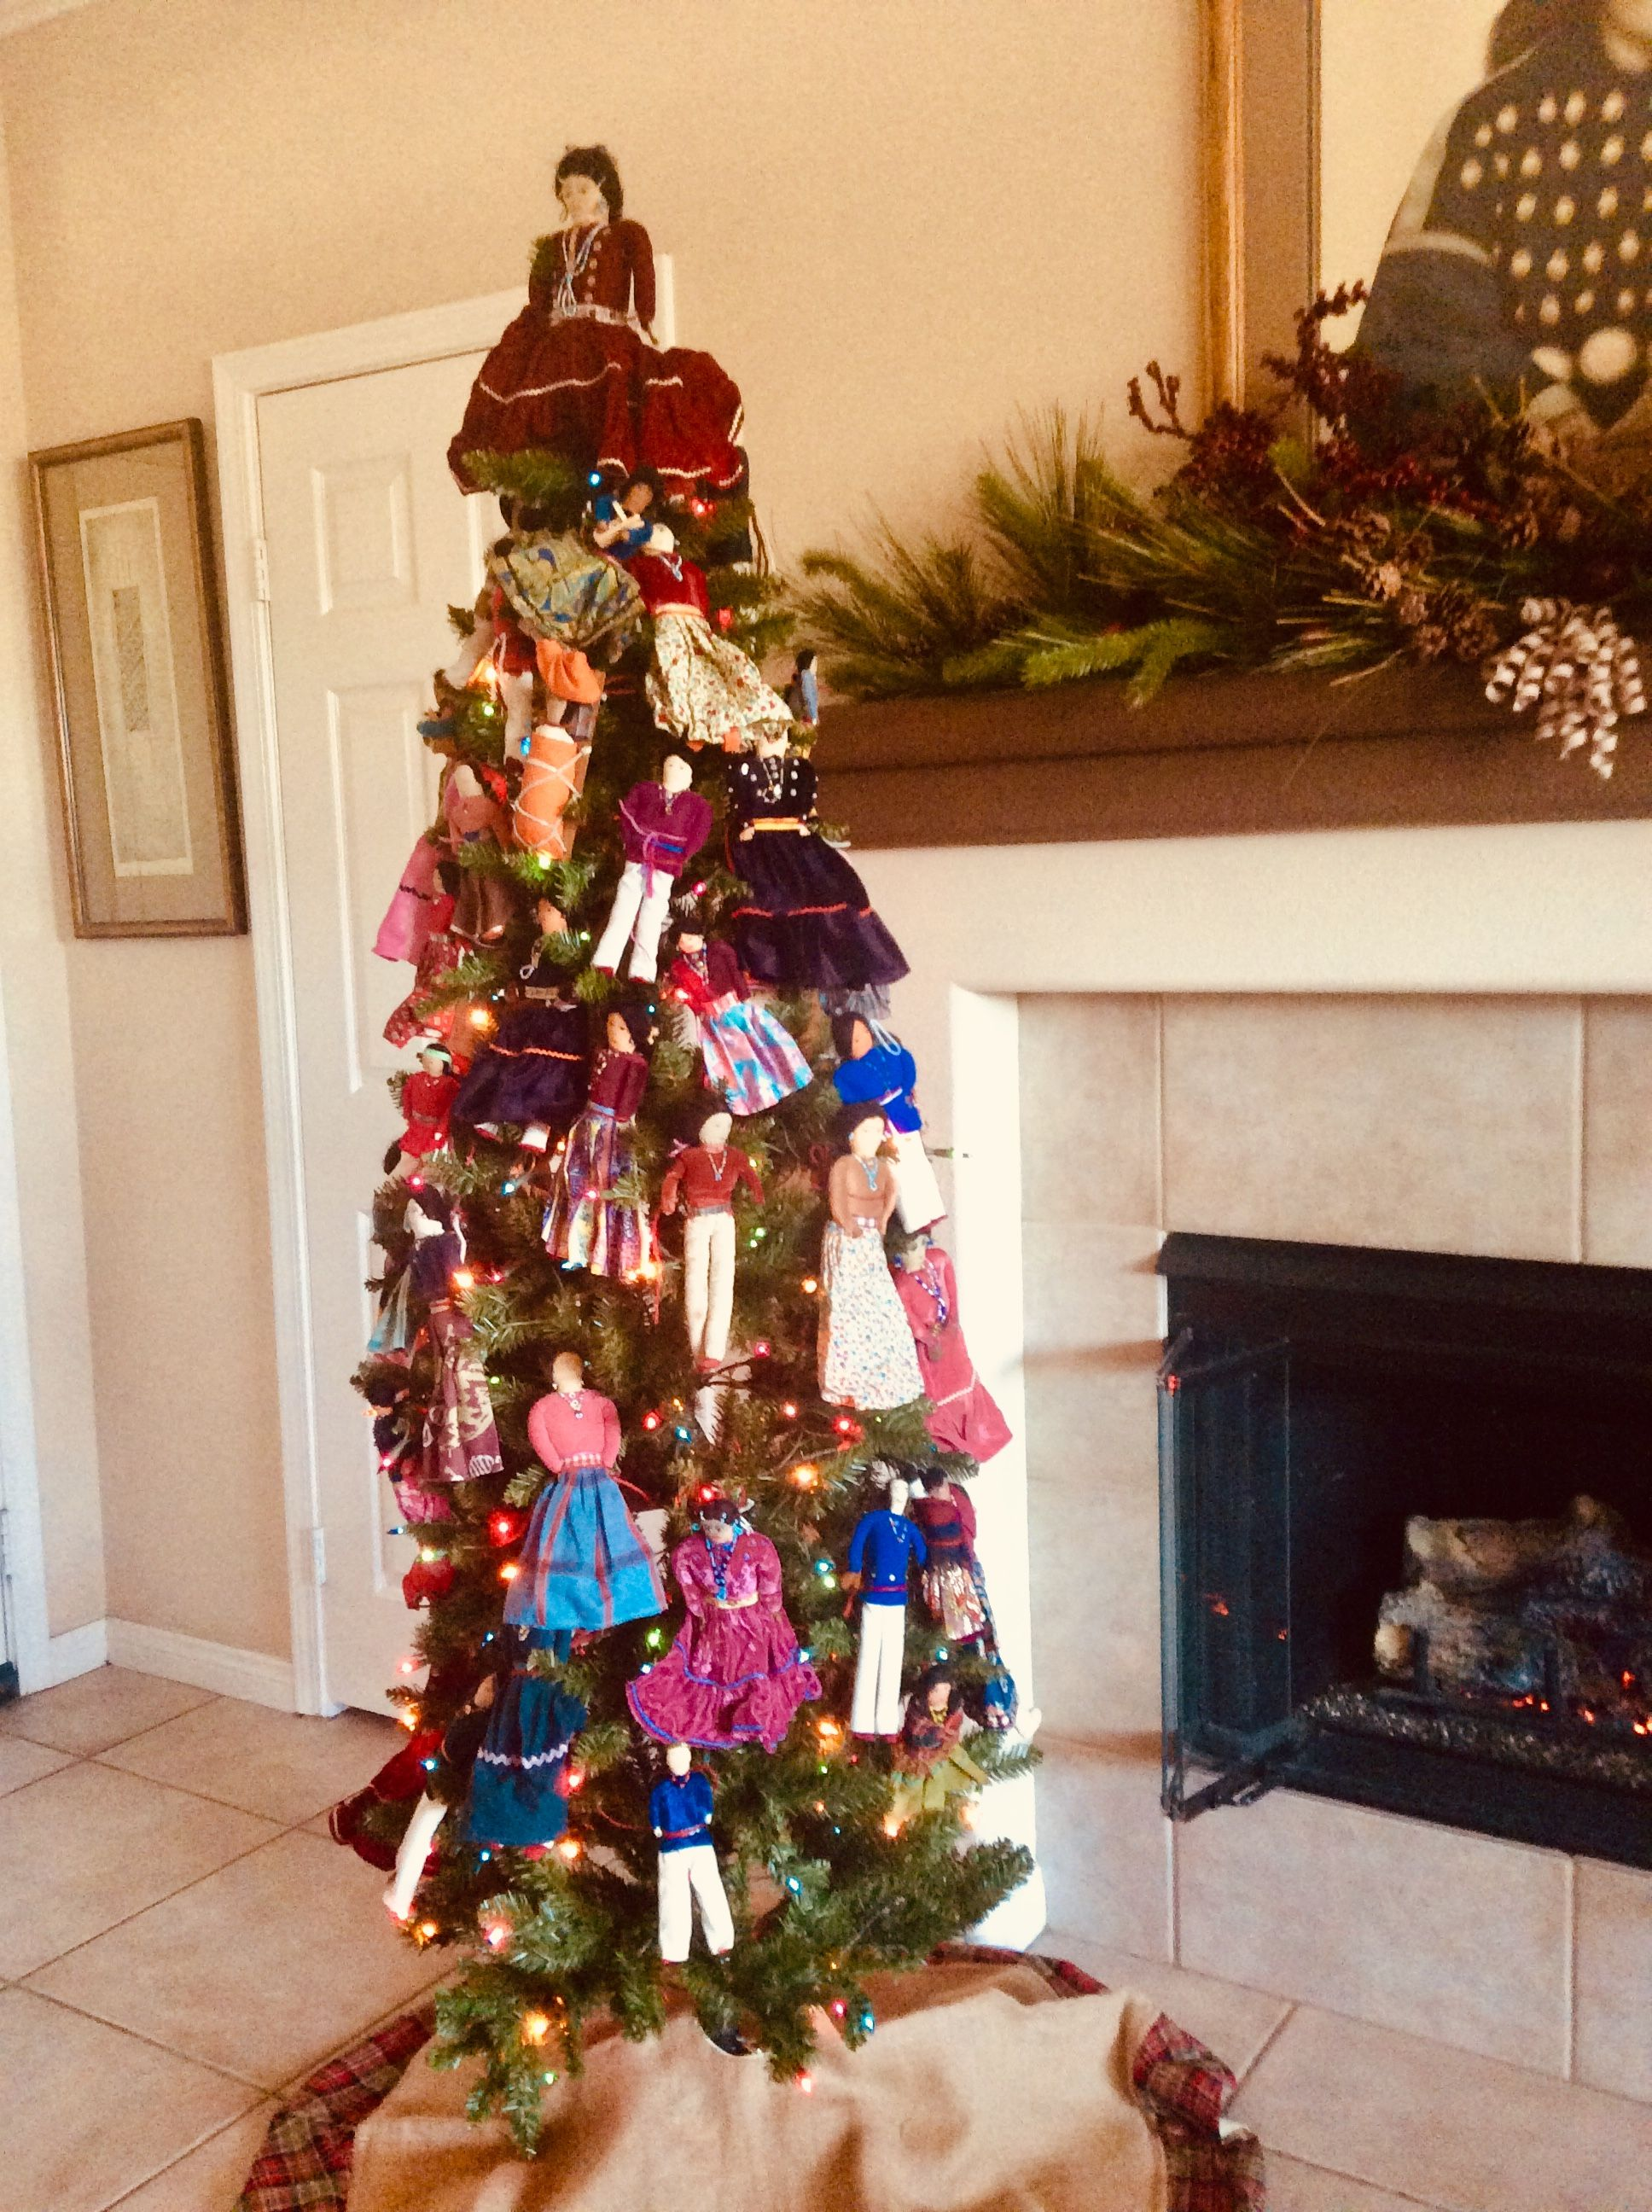 Pin By Jesse Dee On America S Indigenous Holiday Decor Decor Christmas Tree